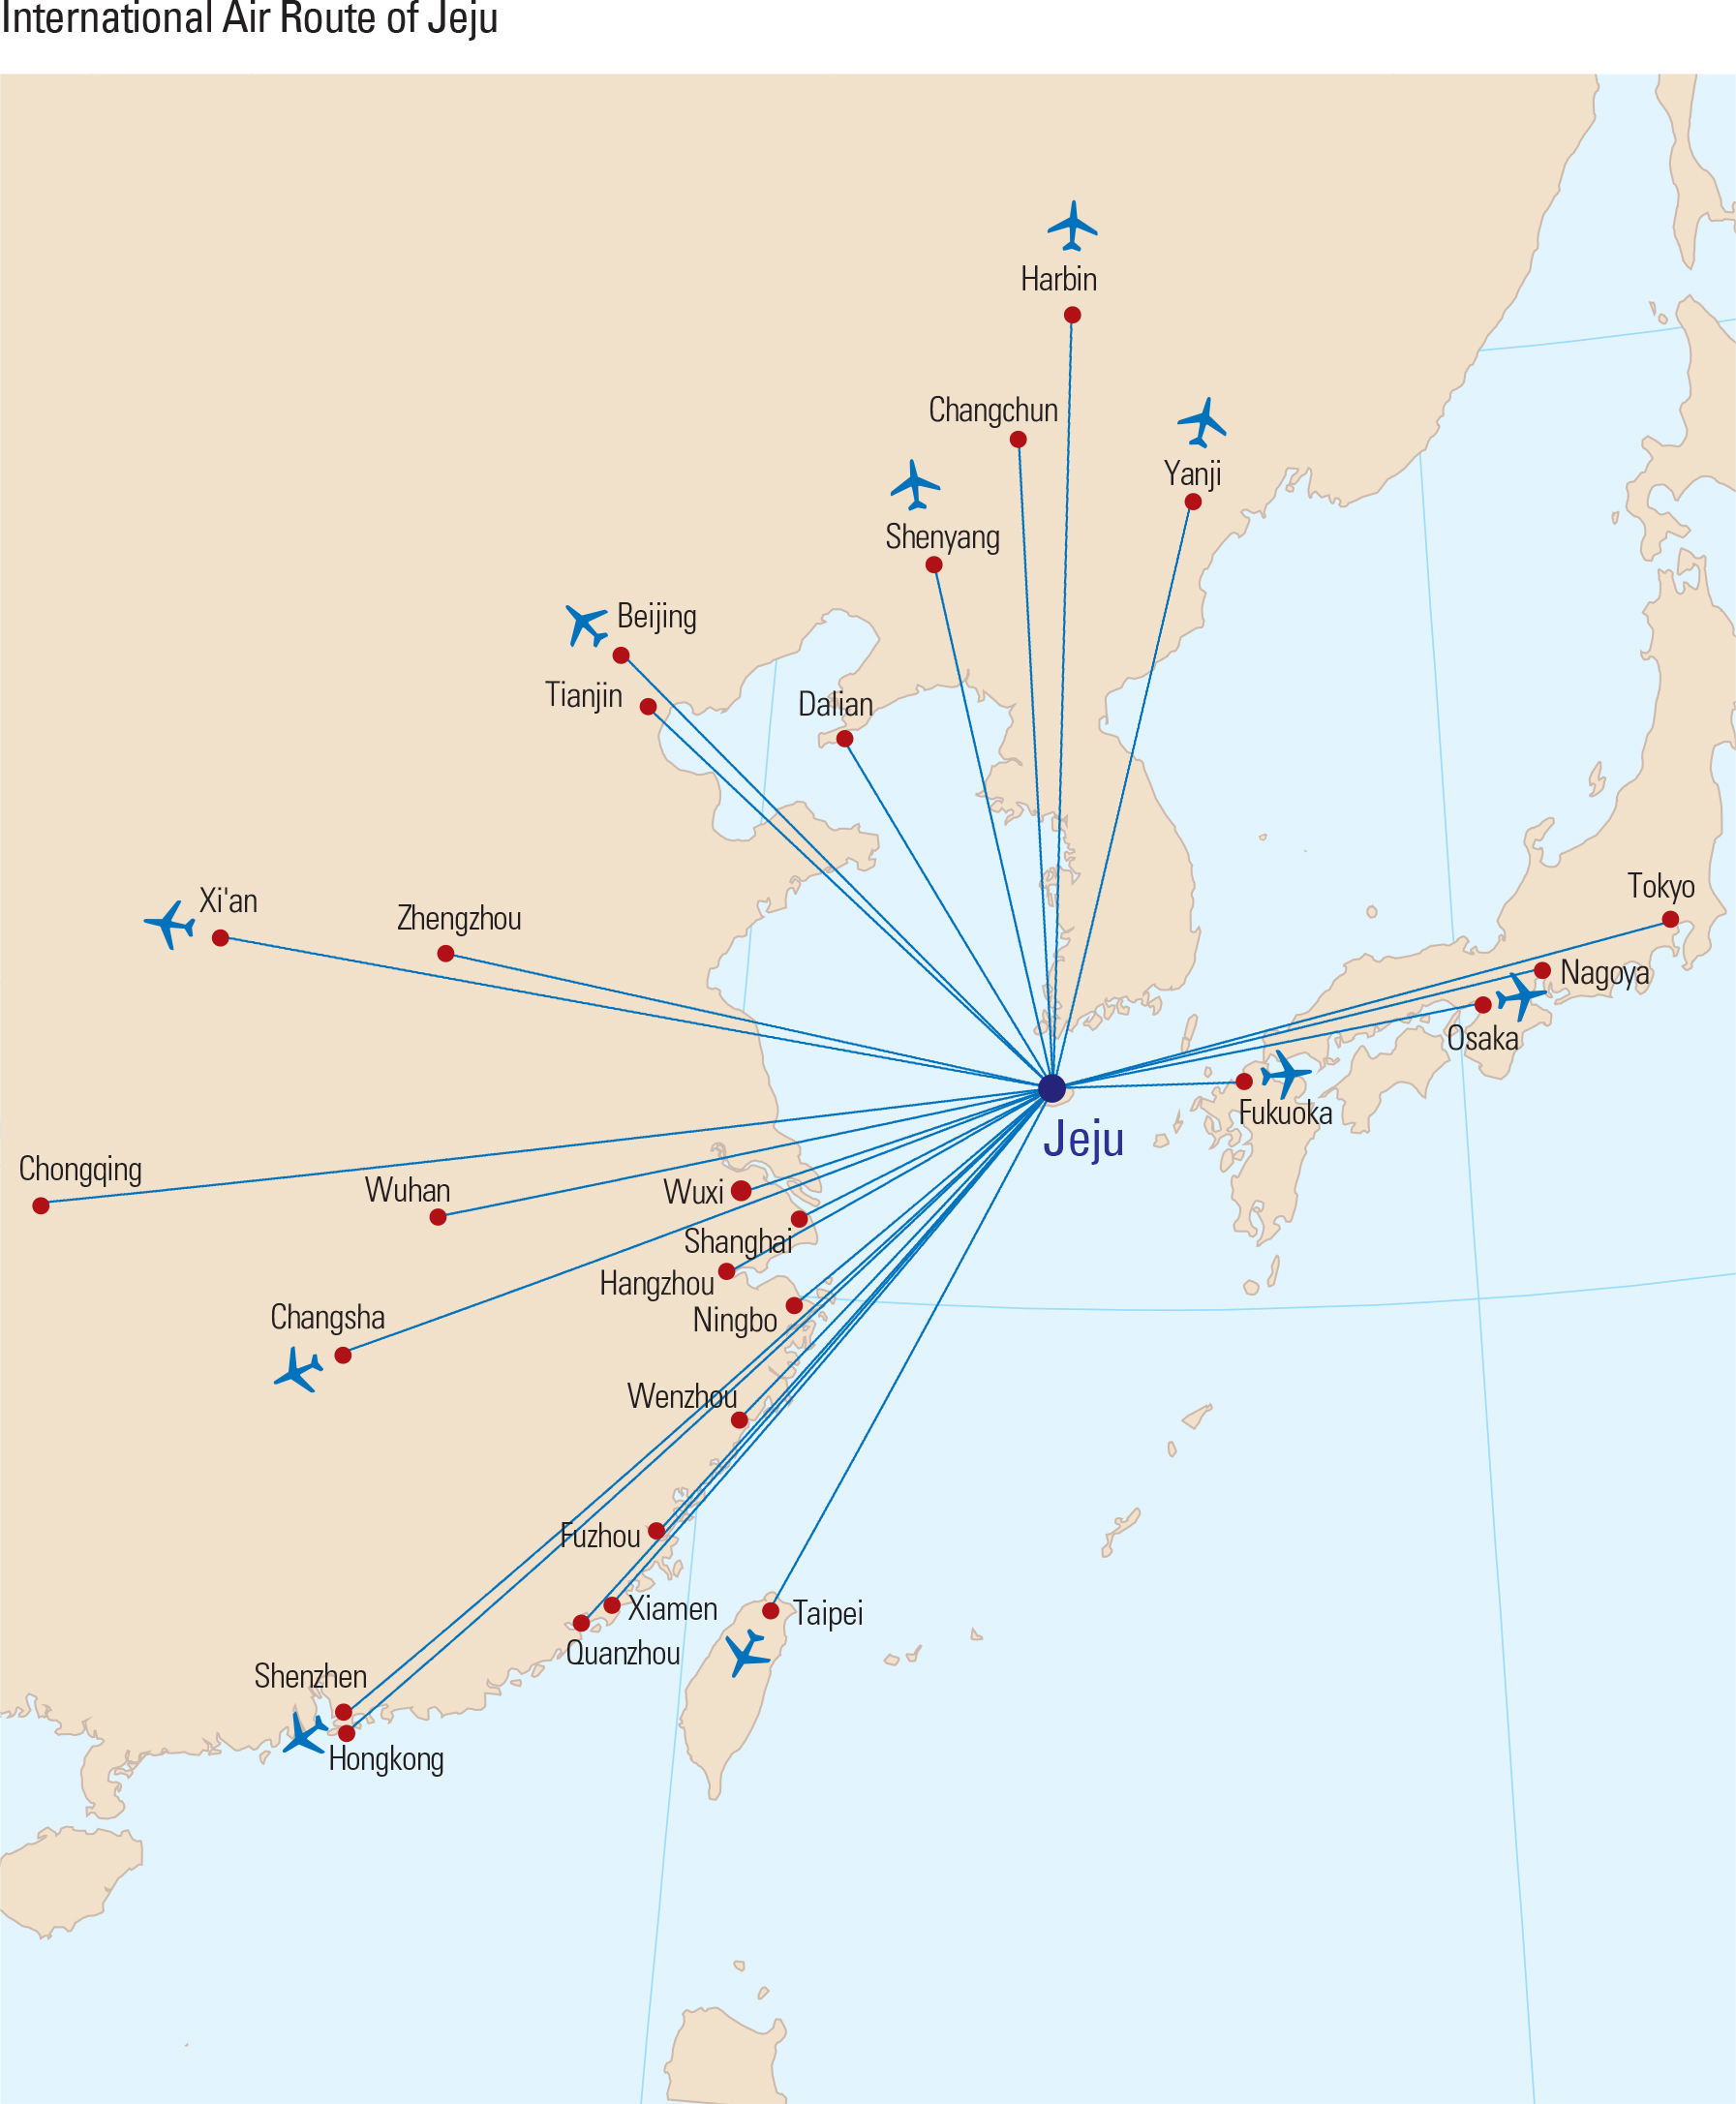 International Air Route of Jeju